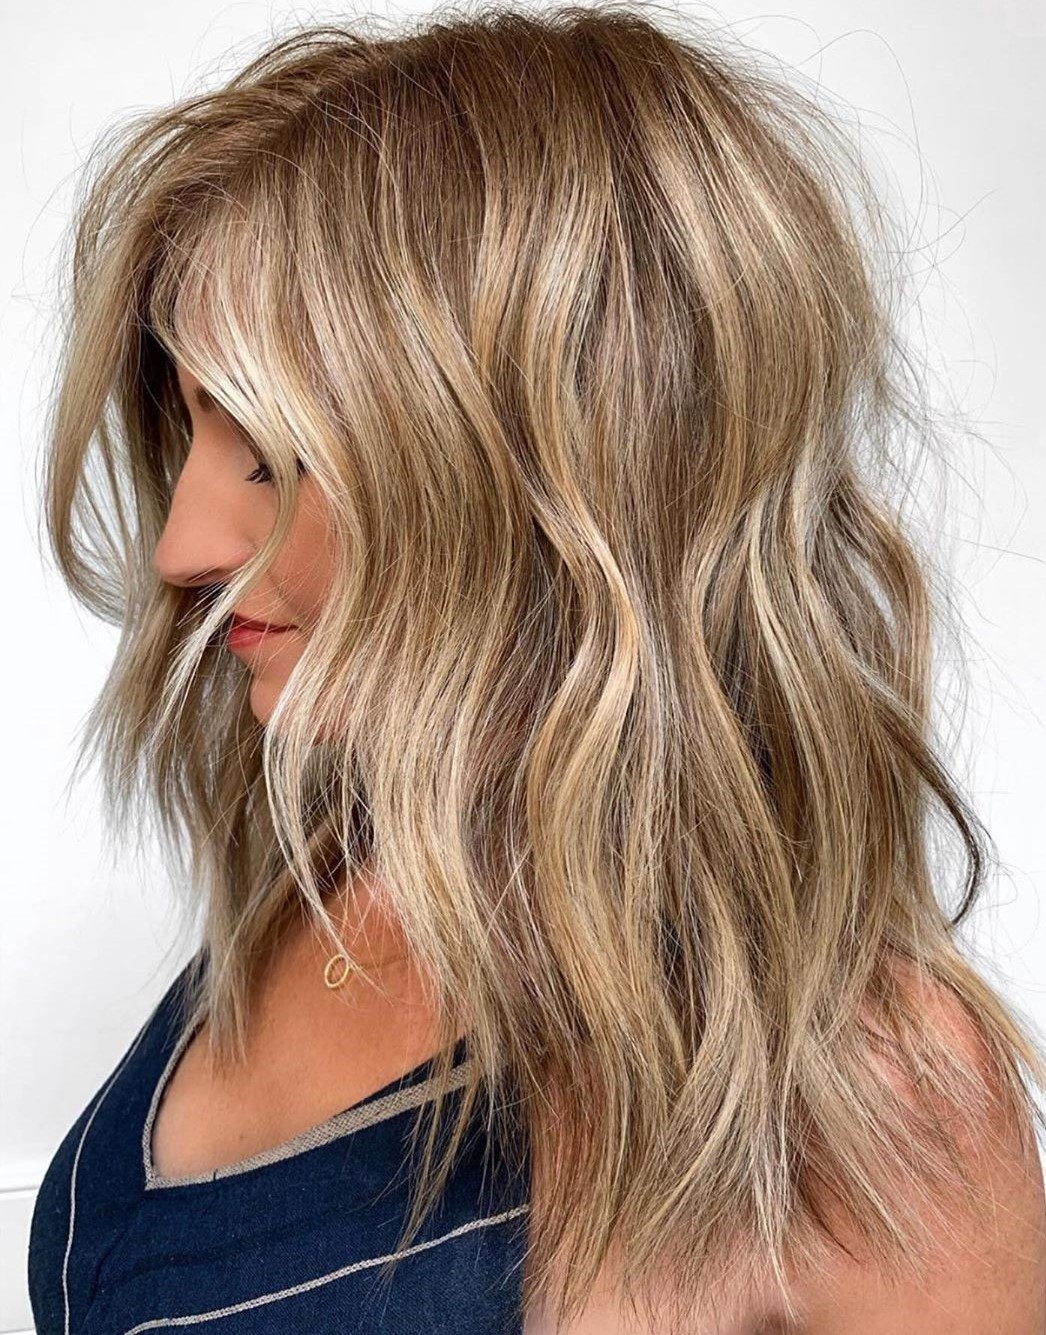 Dirty Blonde Hair with Sun-Kissed Highlights